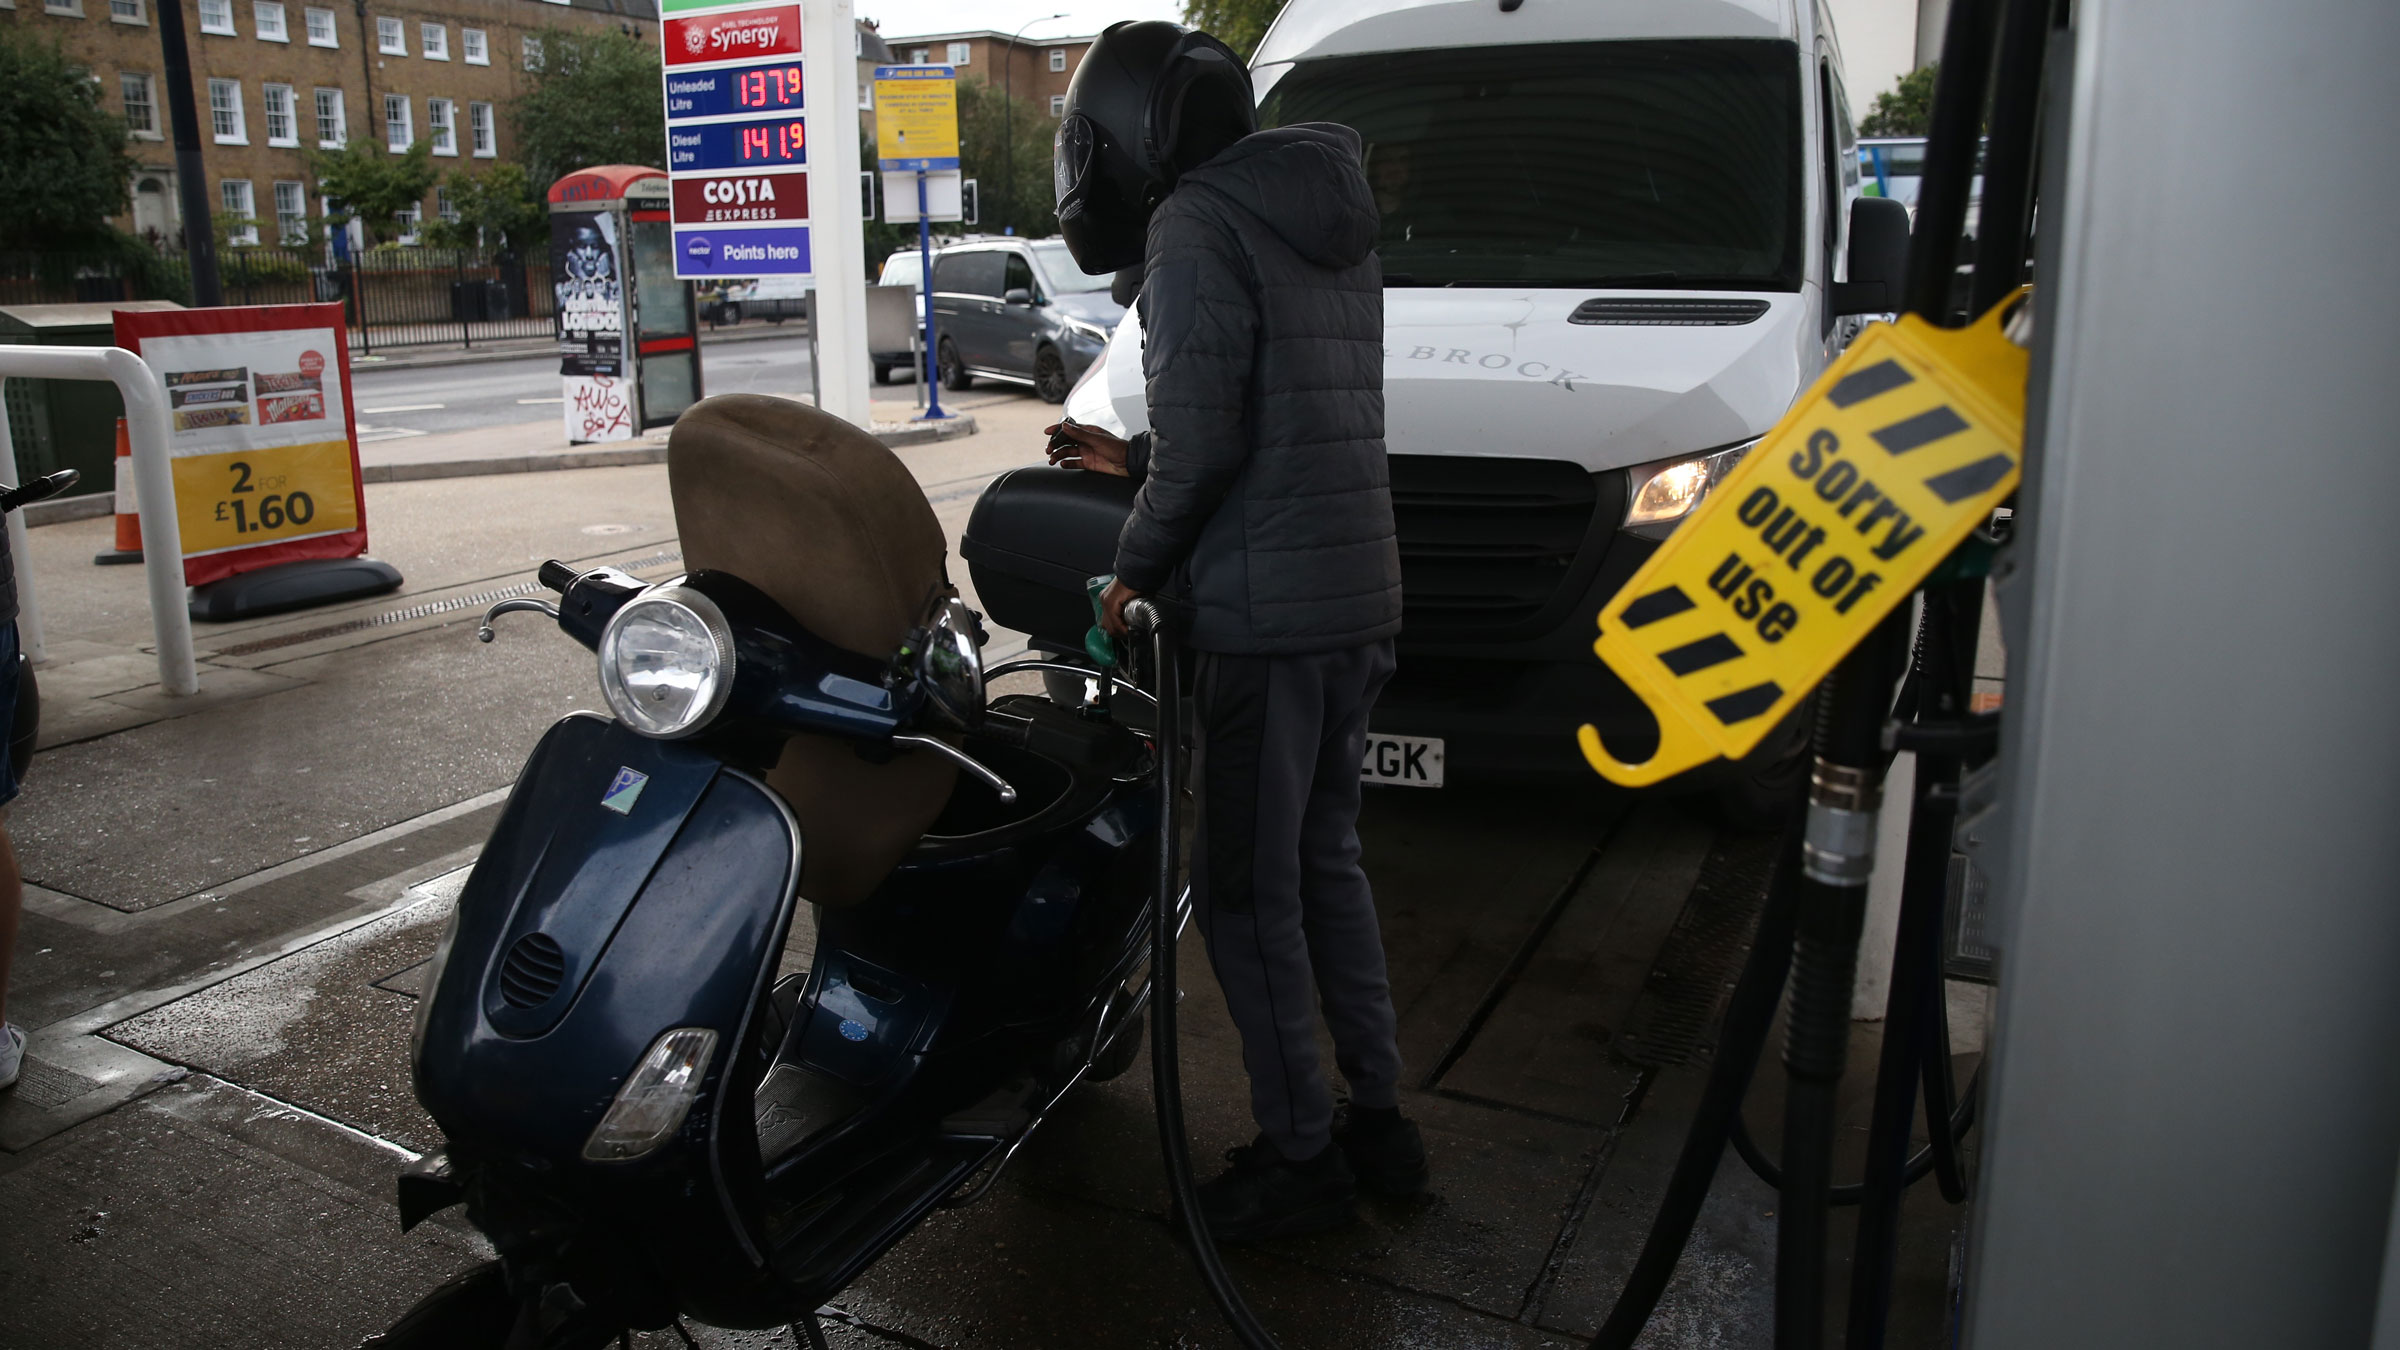 A motorist fills up a vehicle at a London gas station on Tuesday.